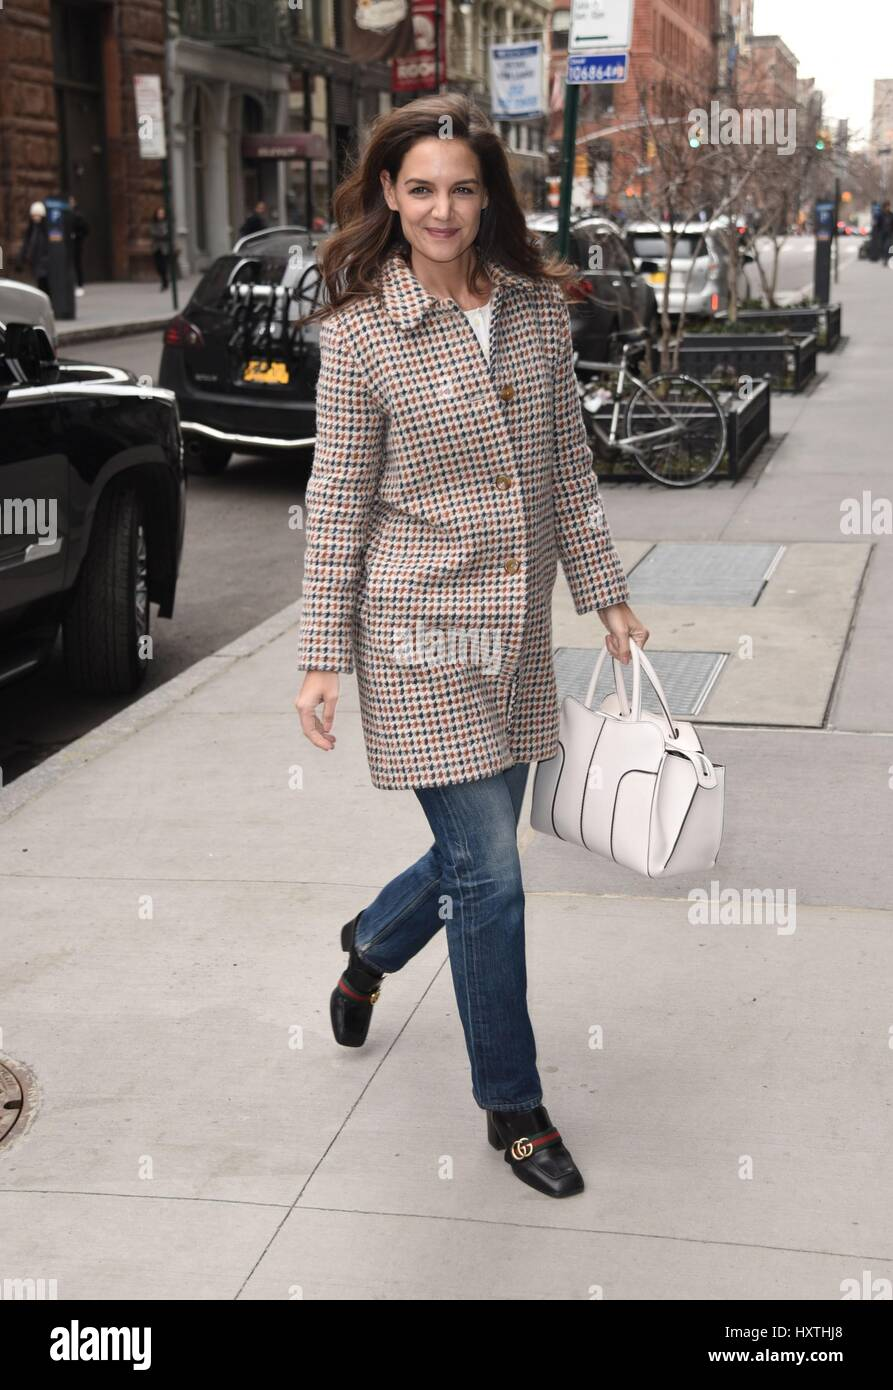 New York, NY, USA. 30th Mar, 2017. Katie Holmes out and about for Celebrity Candids - THU, New York, NY March 30, - Stock Image